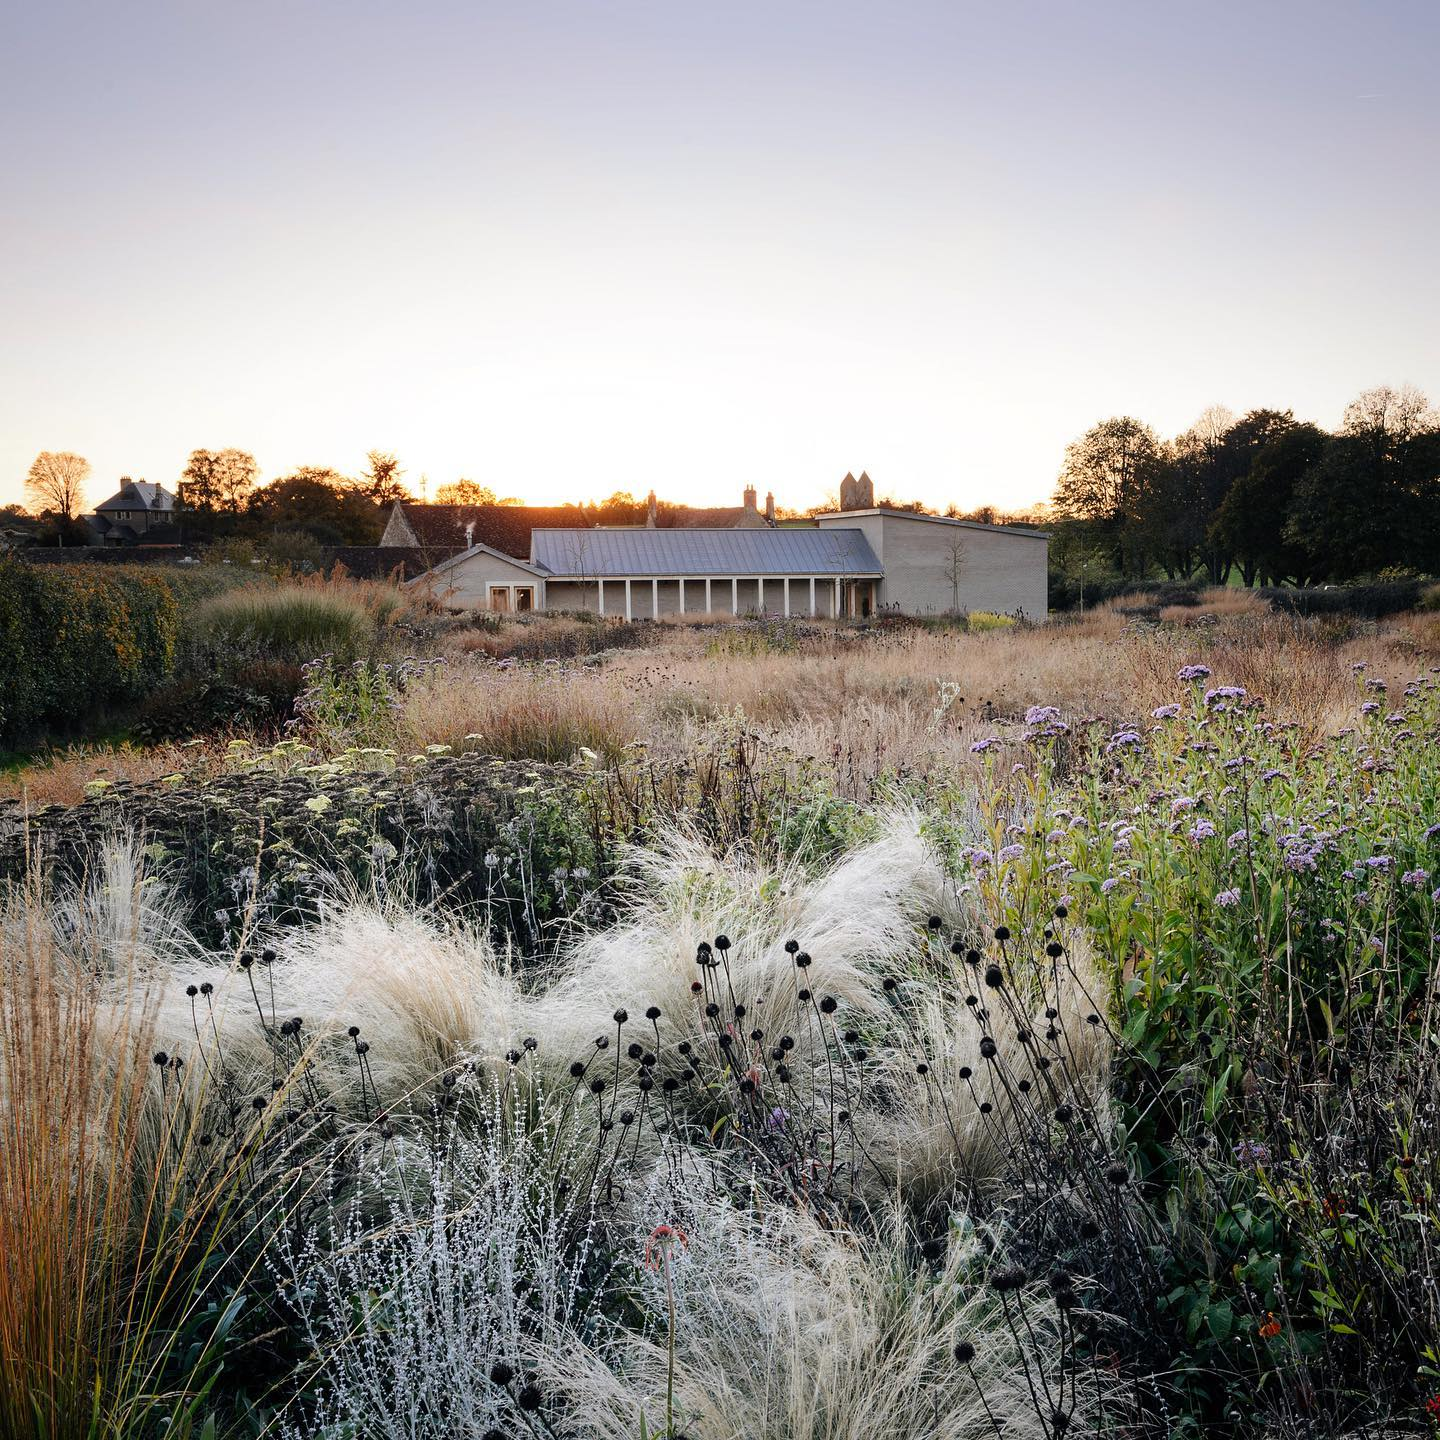 The beautiful soft autumn tones at sunset @hauserwirthsomerset .. @pietoudolf .The garden is open Wednesday - Friday 11am -3pm for those living locally through their booking system online.#hauserandwirthsomerset #pietoudolf #oudolffield #plantingtheoudolfgardens #filbertpress #gardenphotography #gardenphotographer #somersetgarden #autumngarden #lateperennials #nikonphotography #nikon #nikonphotographer